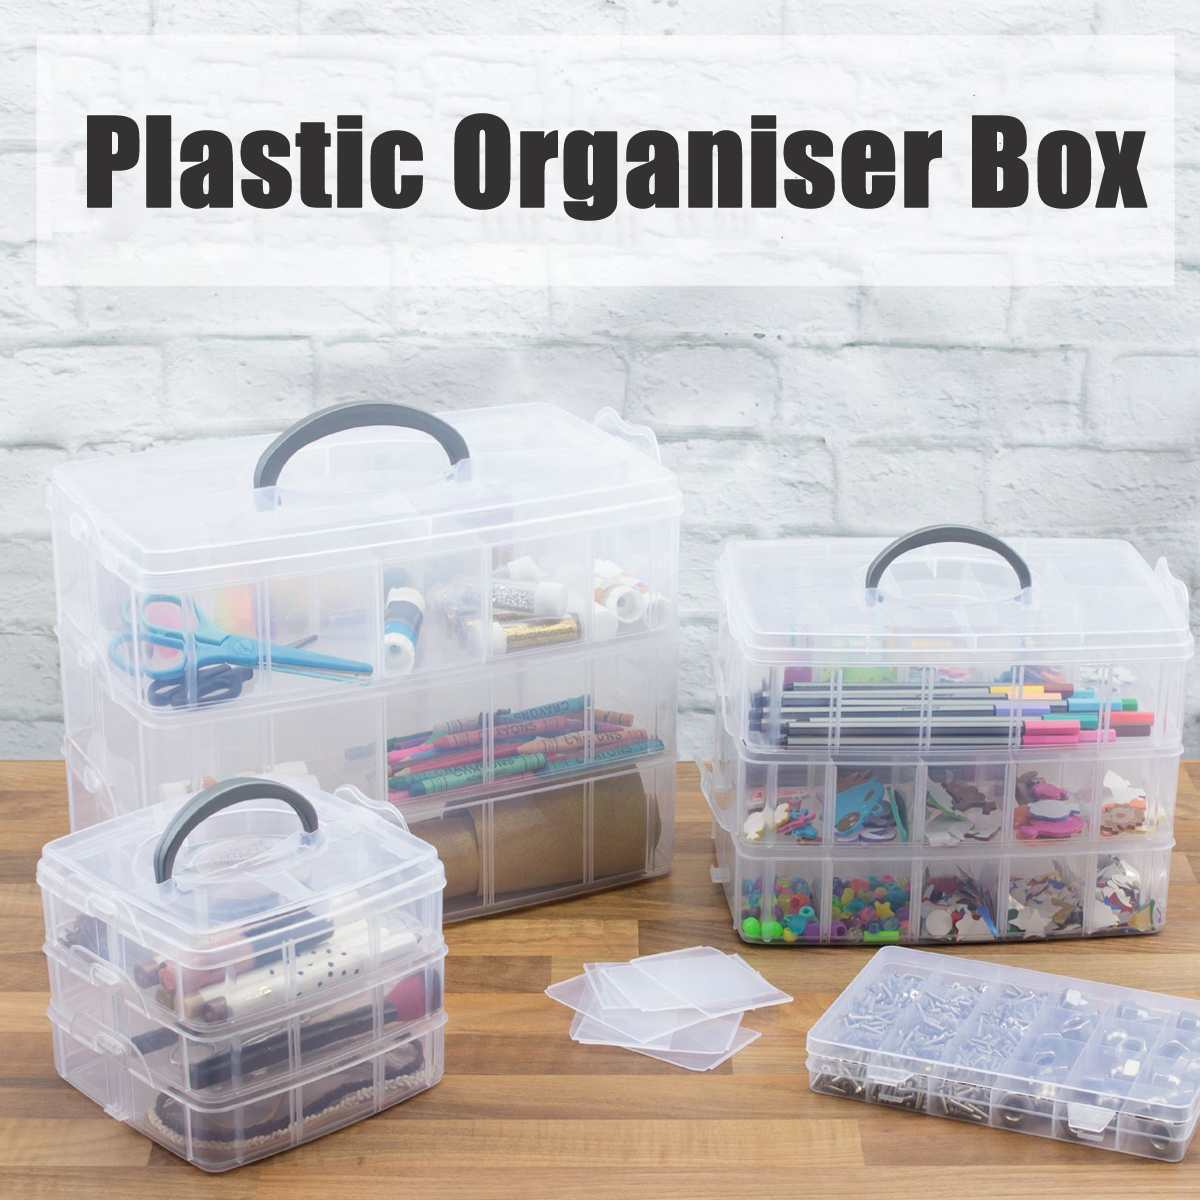 18-30 Grids Jewellery Craft Beads Case Box Plastic Storage Box Case Compartment Box Clear Storage Organiser Tool 3 Layer